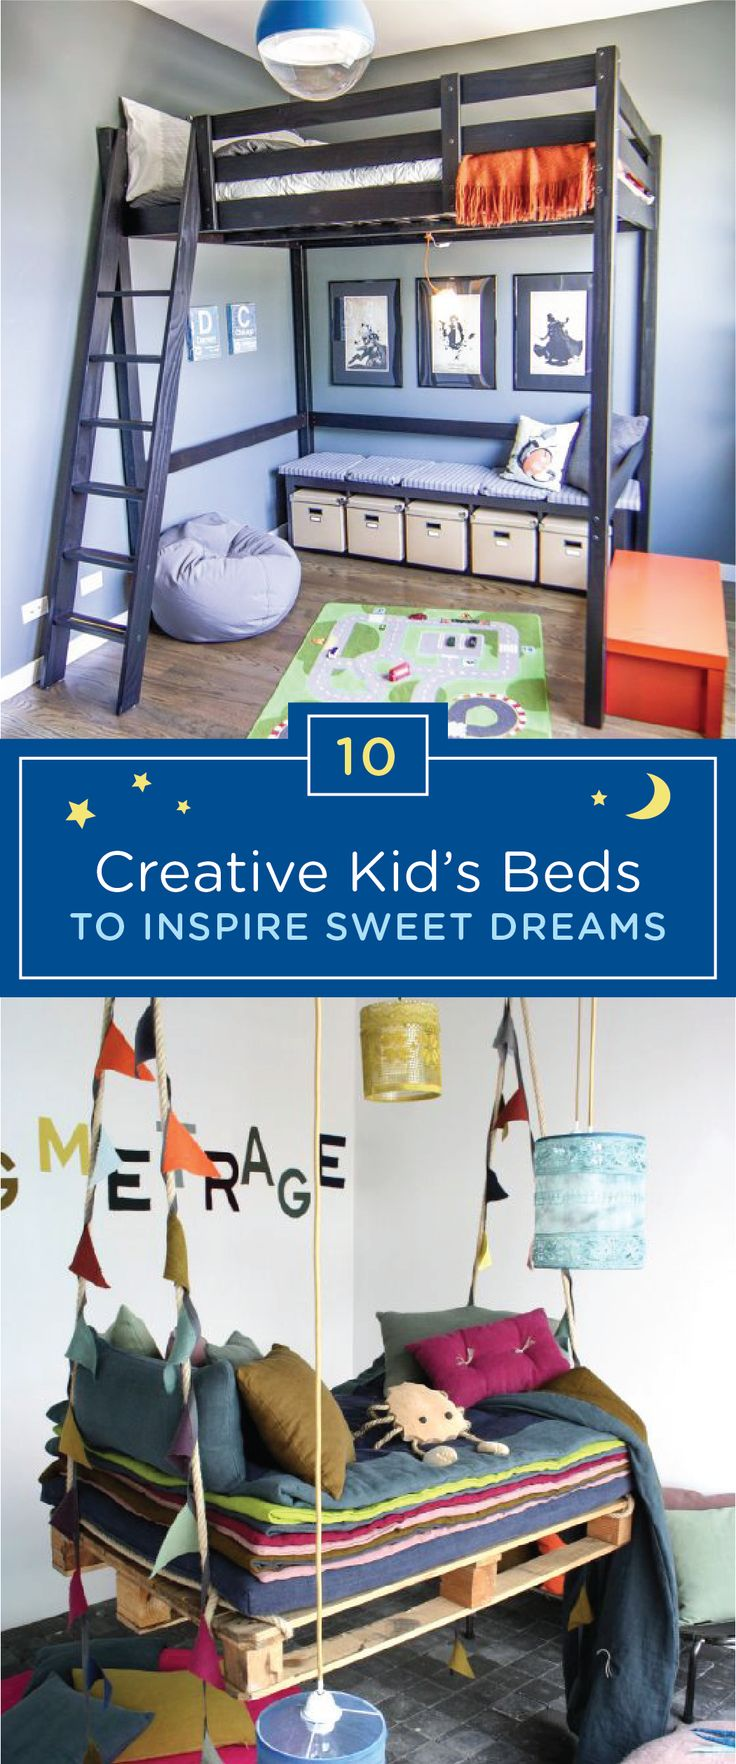 Your child will have nothing but sweet dreams thanks to this collection of creative kids' beds. Explore options like a modern loft bed or a whimsical DIY hanging pallet bed. If your child frequently experiences nighttime wetness, a new bed might help him get excited for bedtime again. You can also have your child wear GoodNites Bedtime Pants before going to sleep at night to keep him and his bed protected against any nighttime accidents.